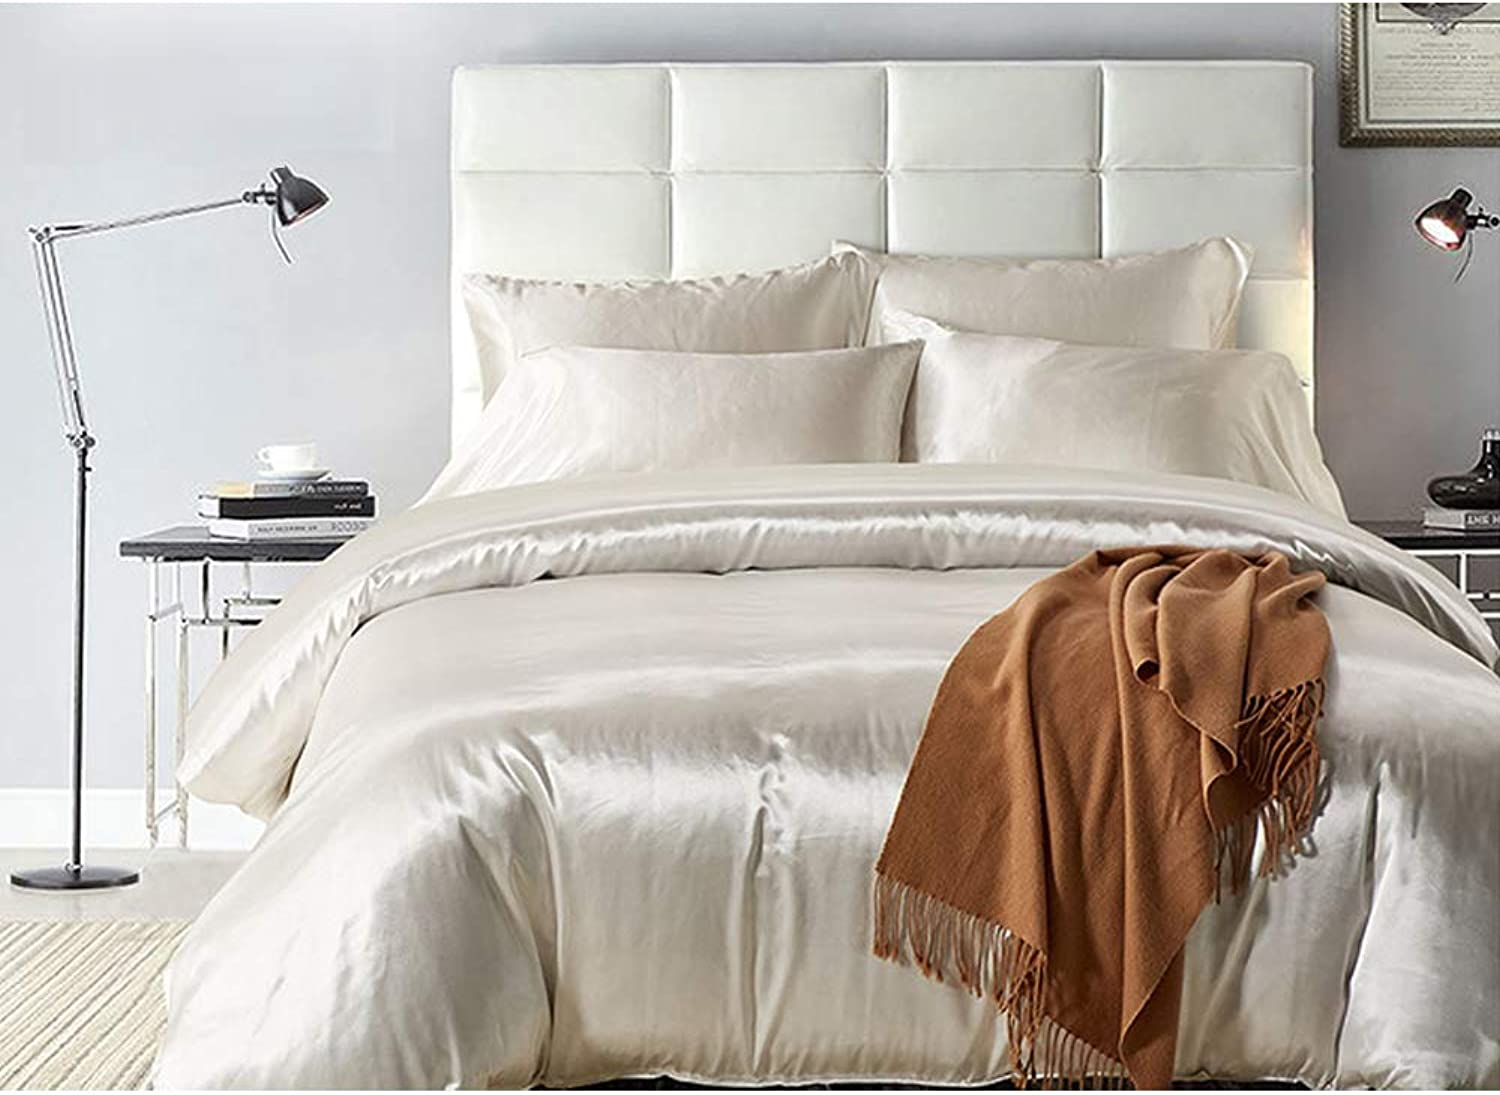 Bedding 3 Piece Duvet Cover Set Microfiber,Monochrome Softest Hypoallergenic Quilt Sets Comfy Breathable Washed Simple Cover-White Twin